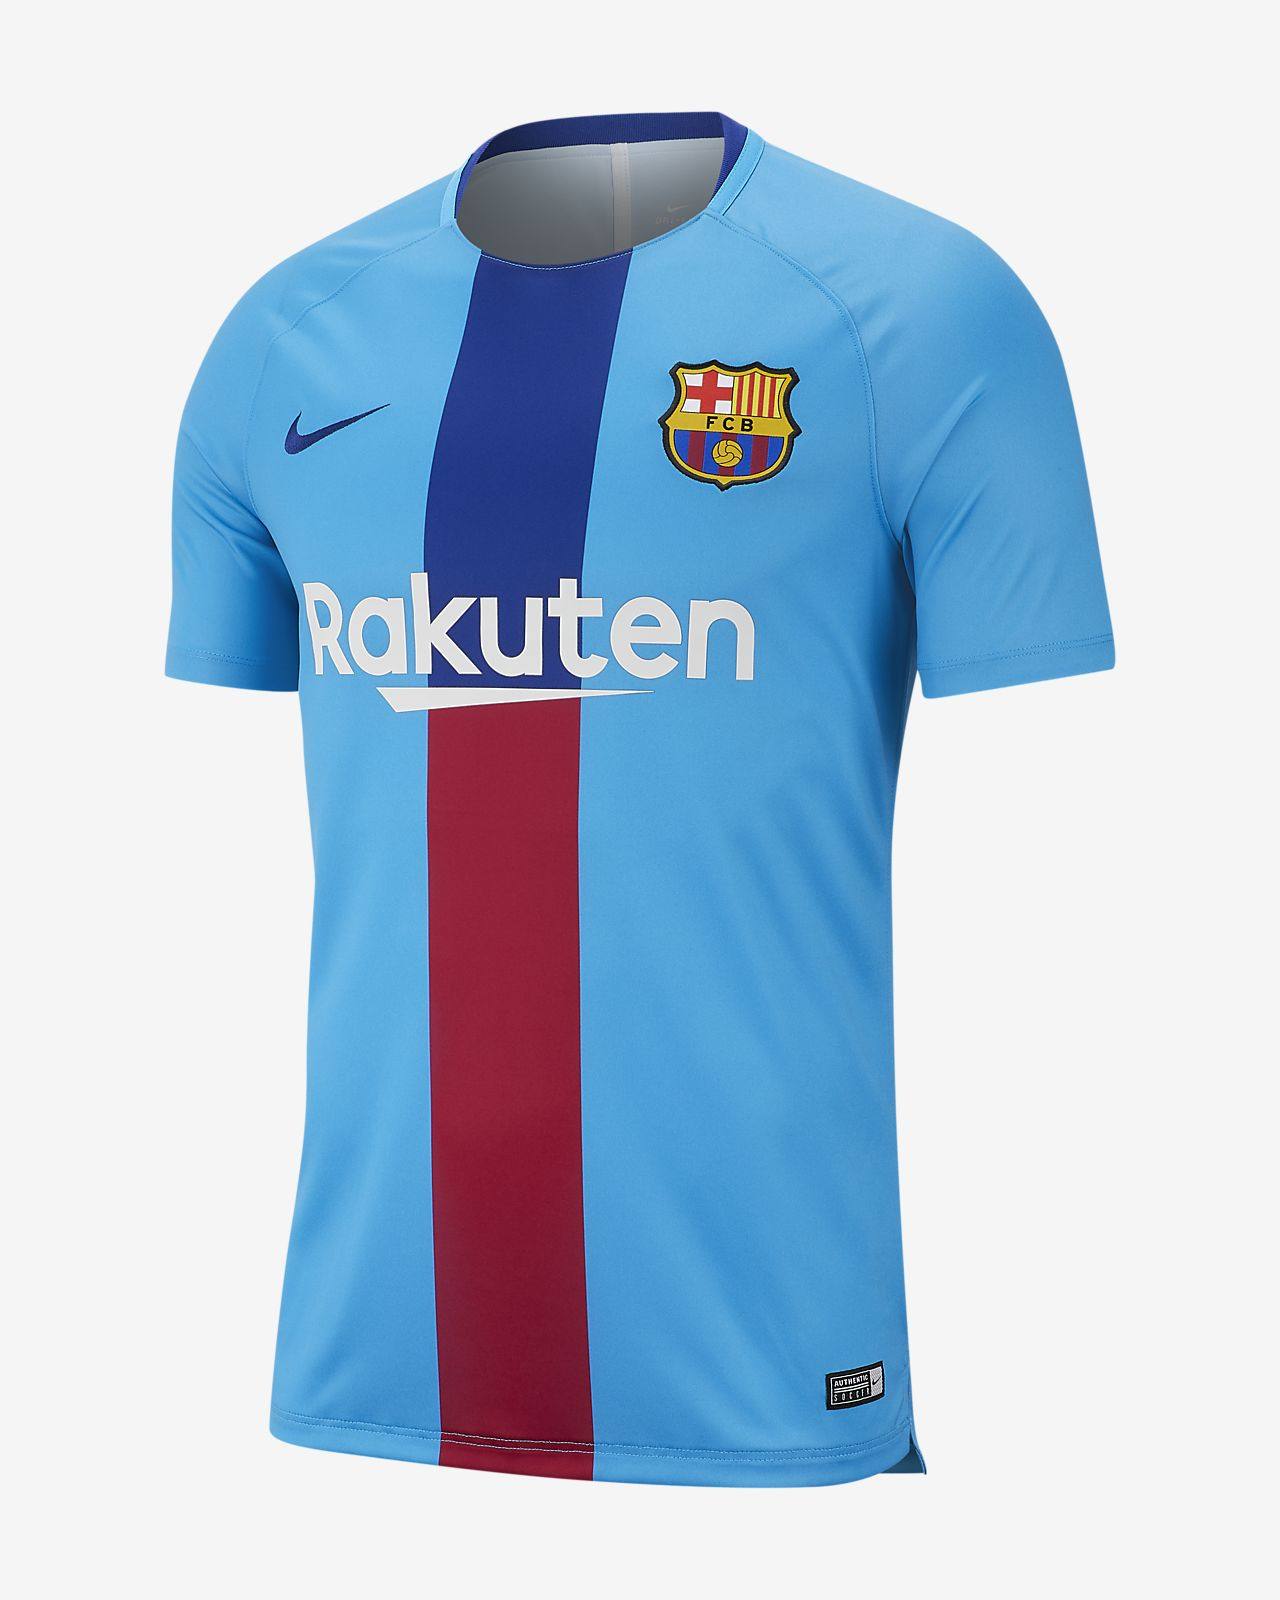 713b159bfd9 Nike Dri-FIT FC Barcelona Squad Men s Short-Sleeve Graphic Football ...